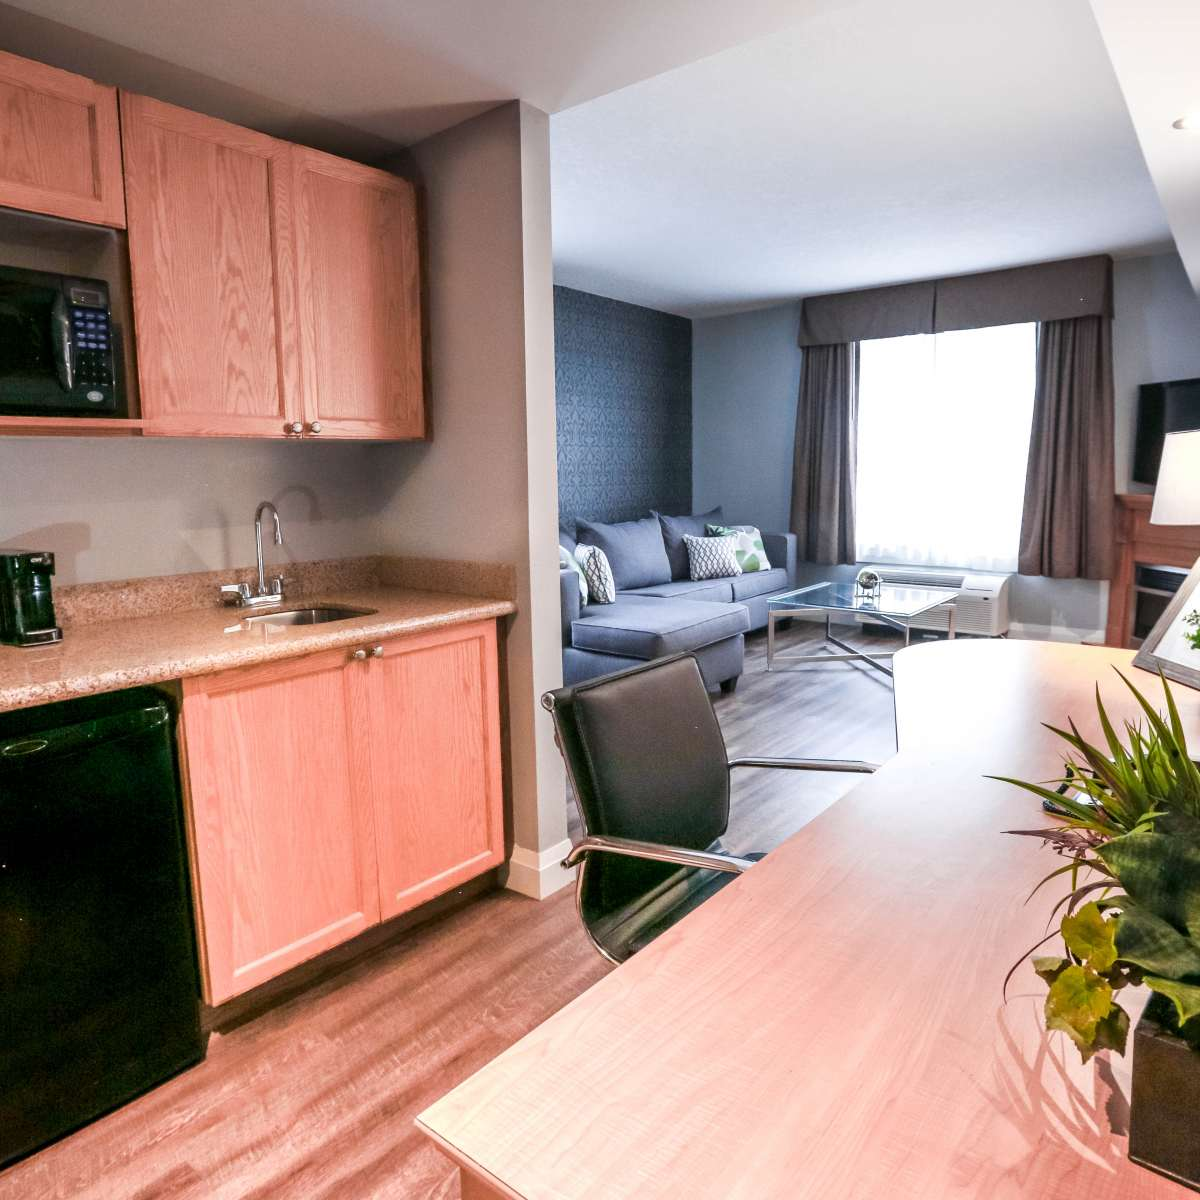 Presidential Suite - Kitchenette with Living Room View